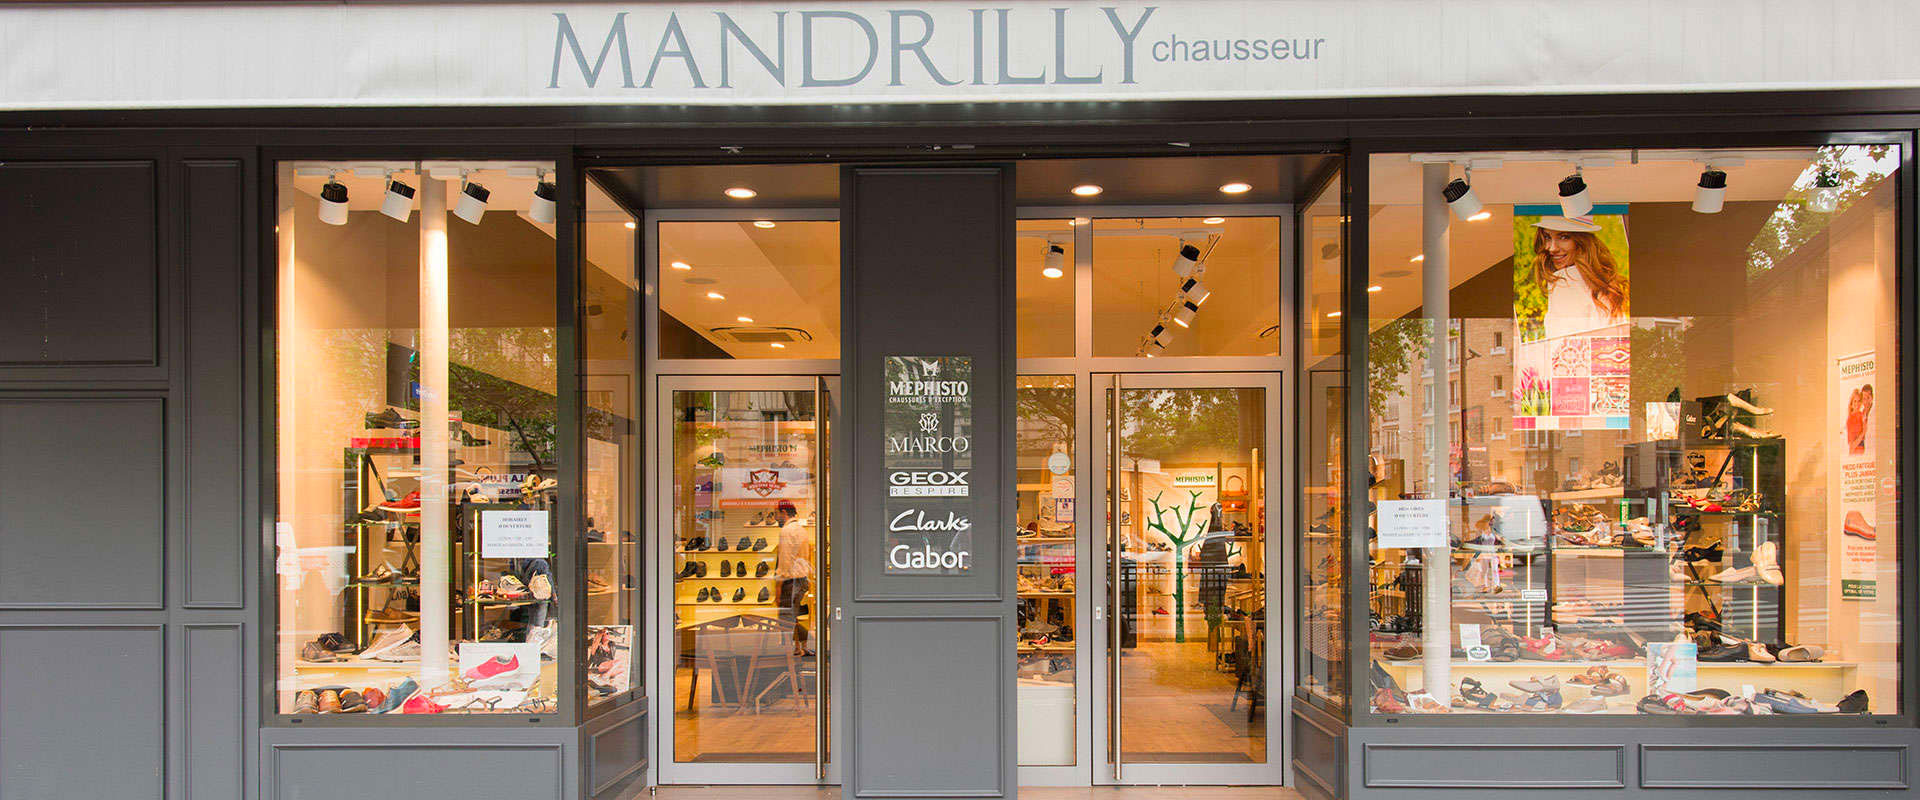 Chaussures Mandrilly - service et conseil